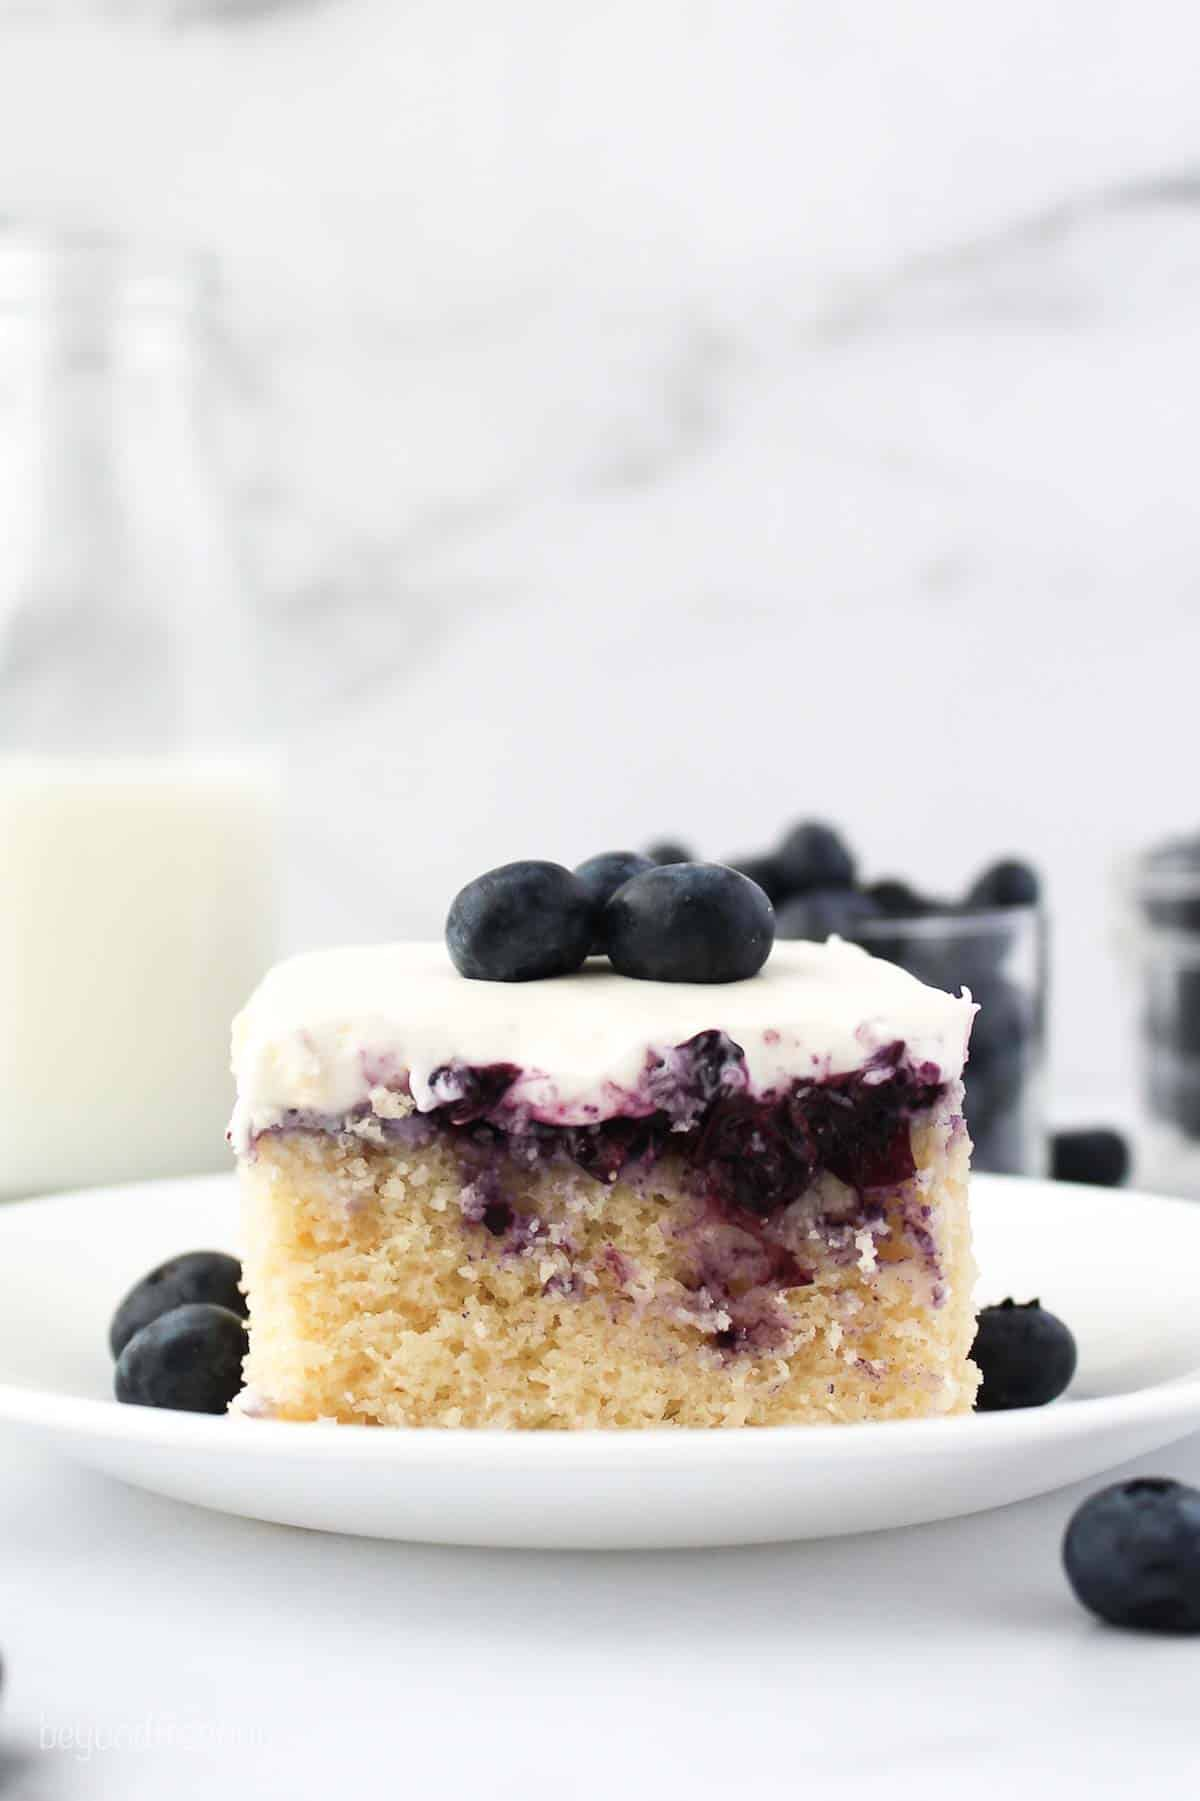 A slice of cake with blueberry filling on a white plate